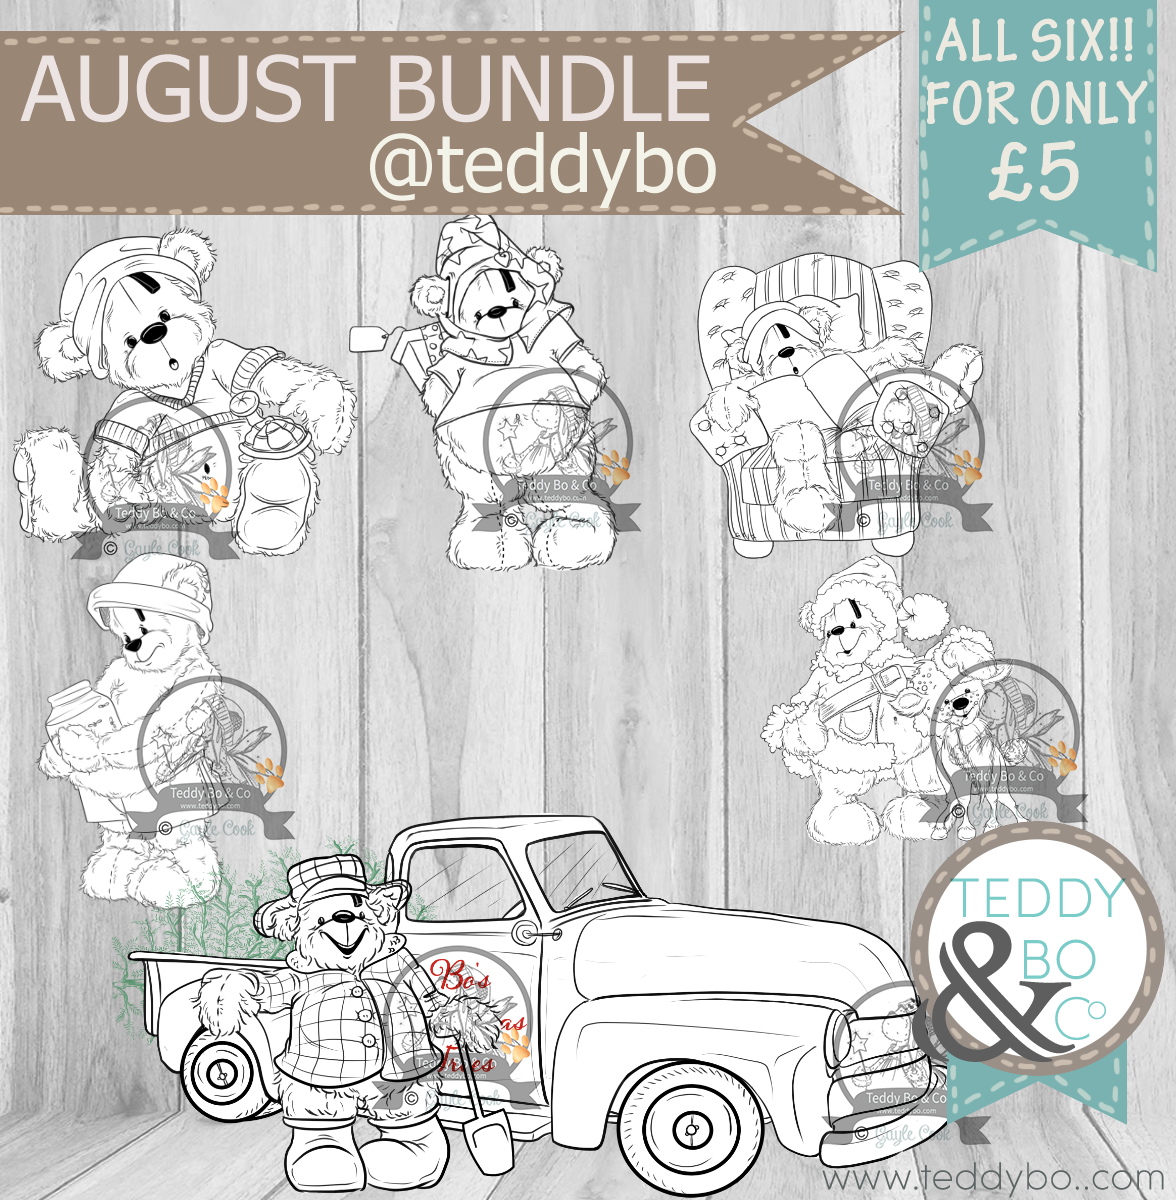 AUGUST_BO_BUNDLEPRODUCT SHOT.png